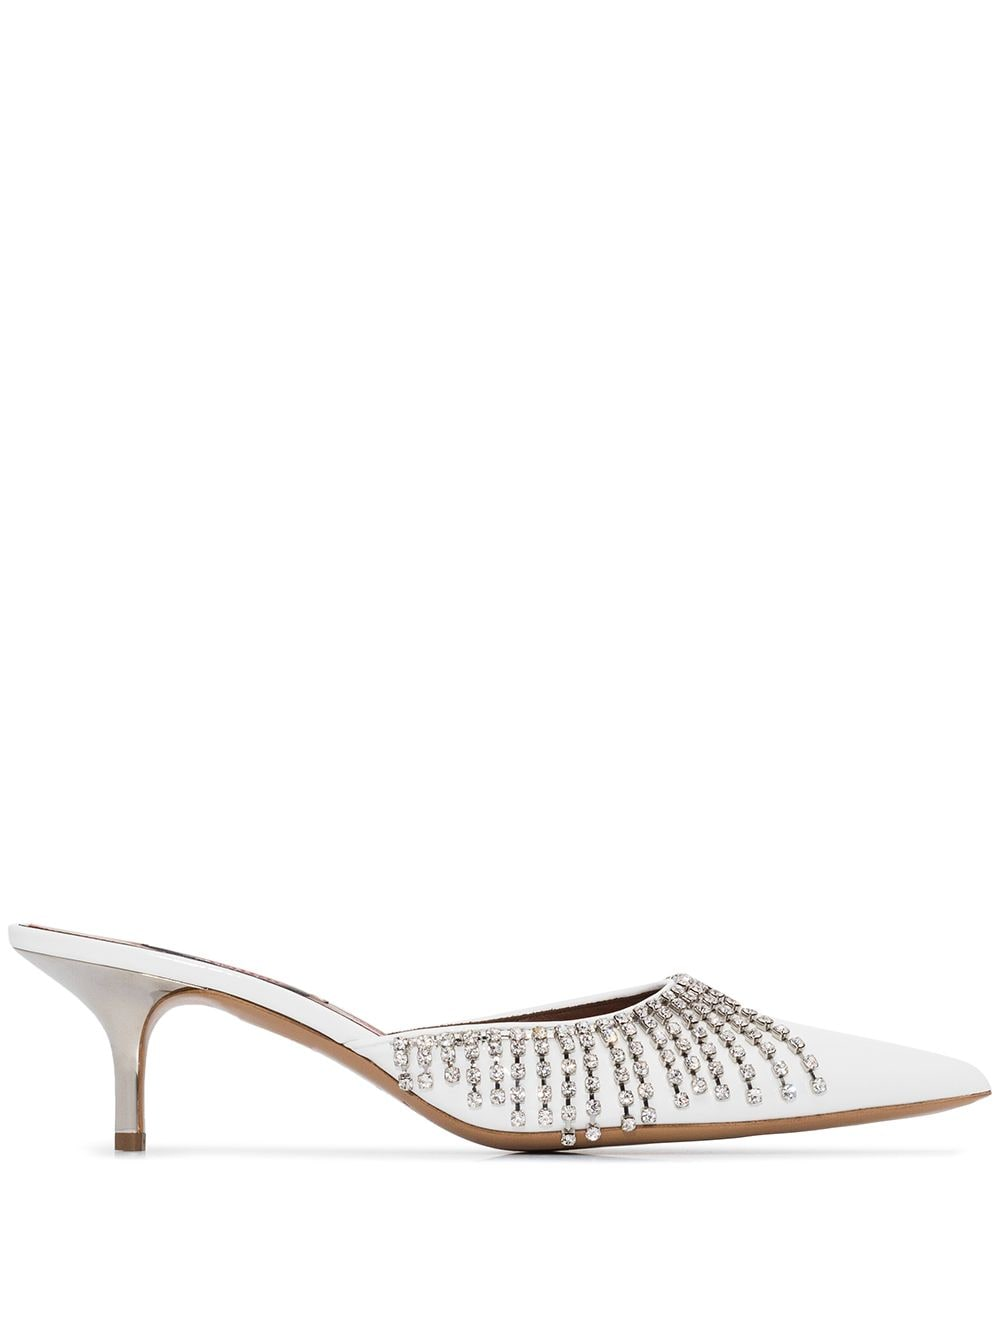 50mm Fringed Crystal-Embellished Mules